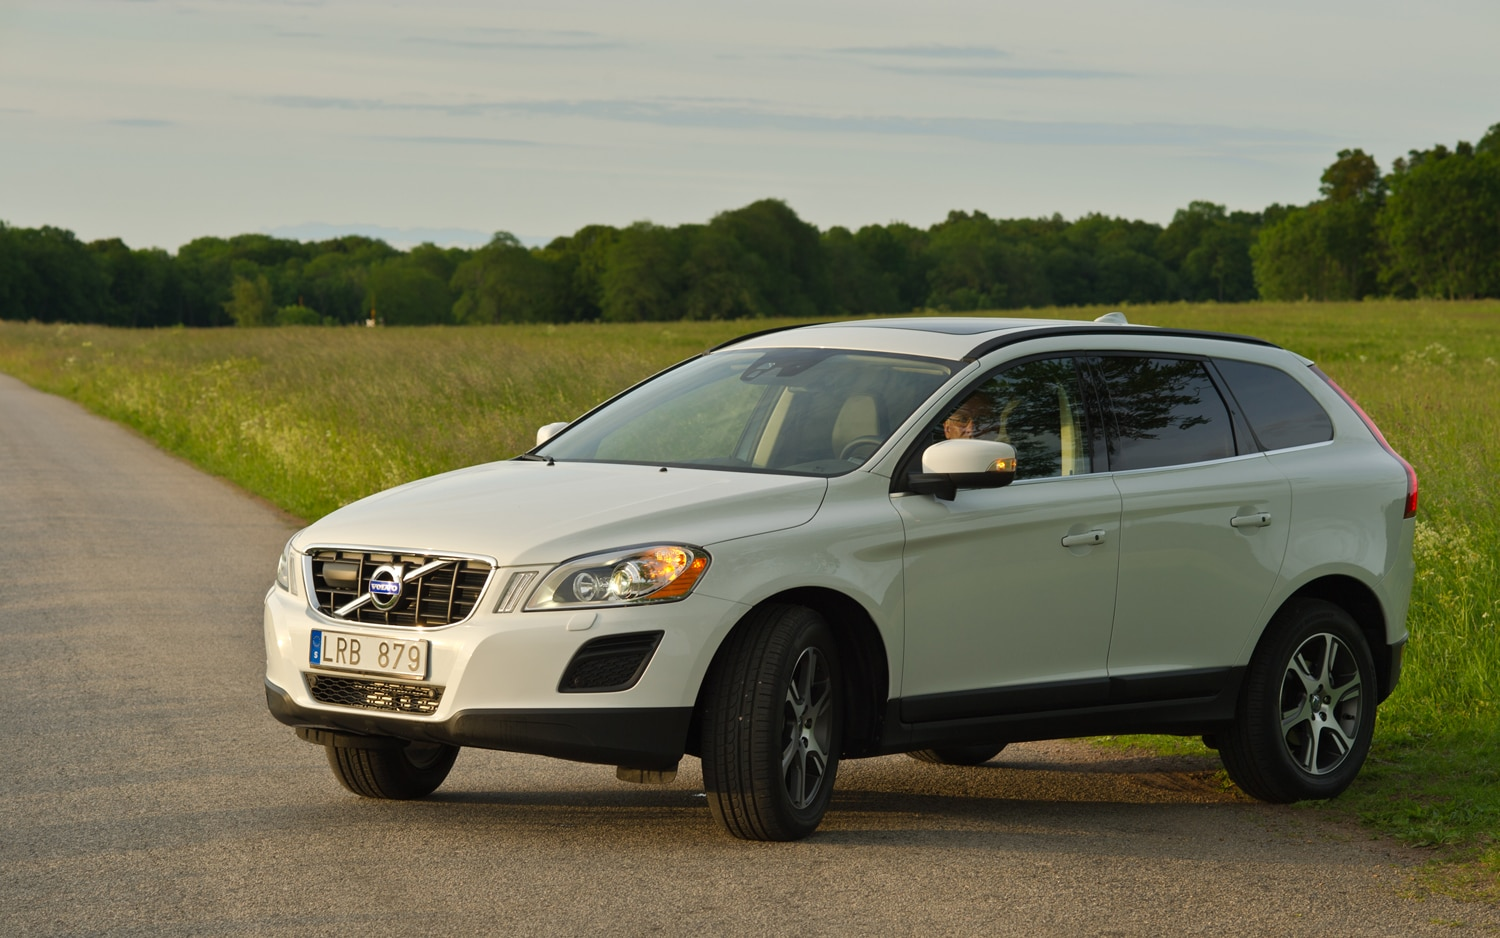 2012 Volvo XC60 R Design Front Left Side View1